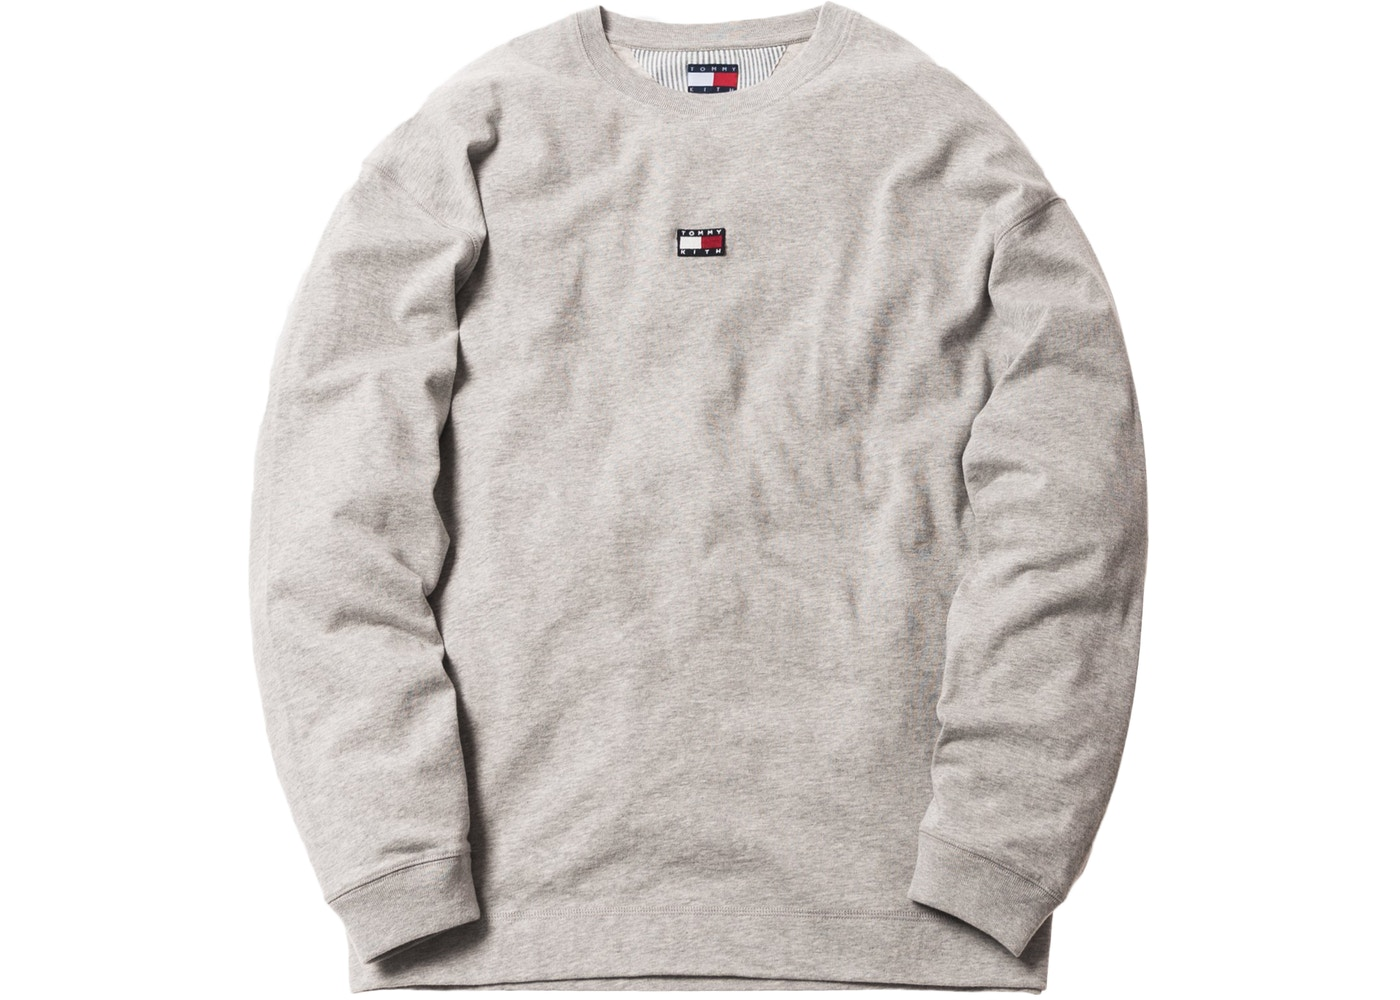 0ded9985 Kith x Tommy Hilfiger Long Sleeve Tee Grey - FW18